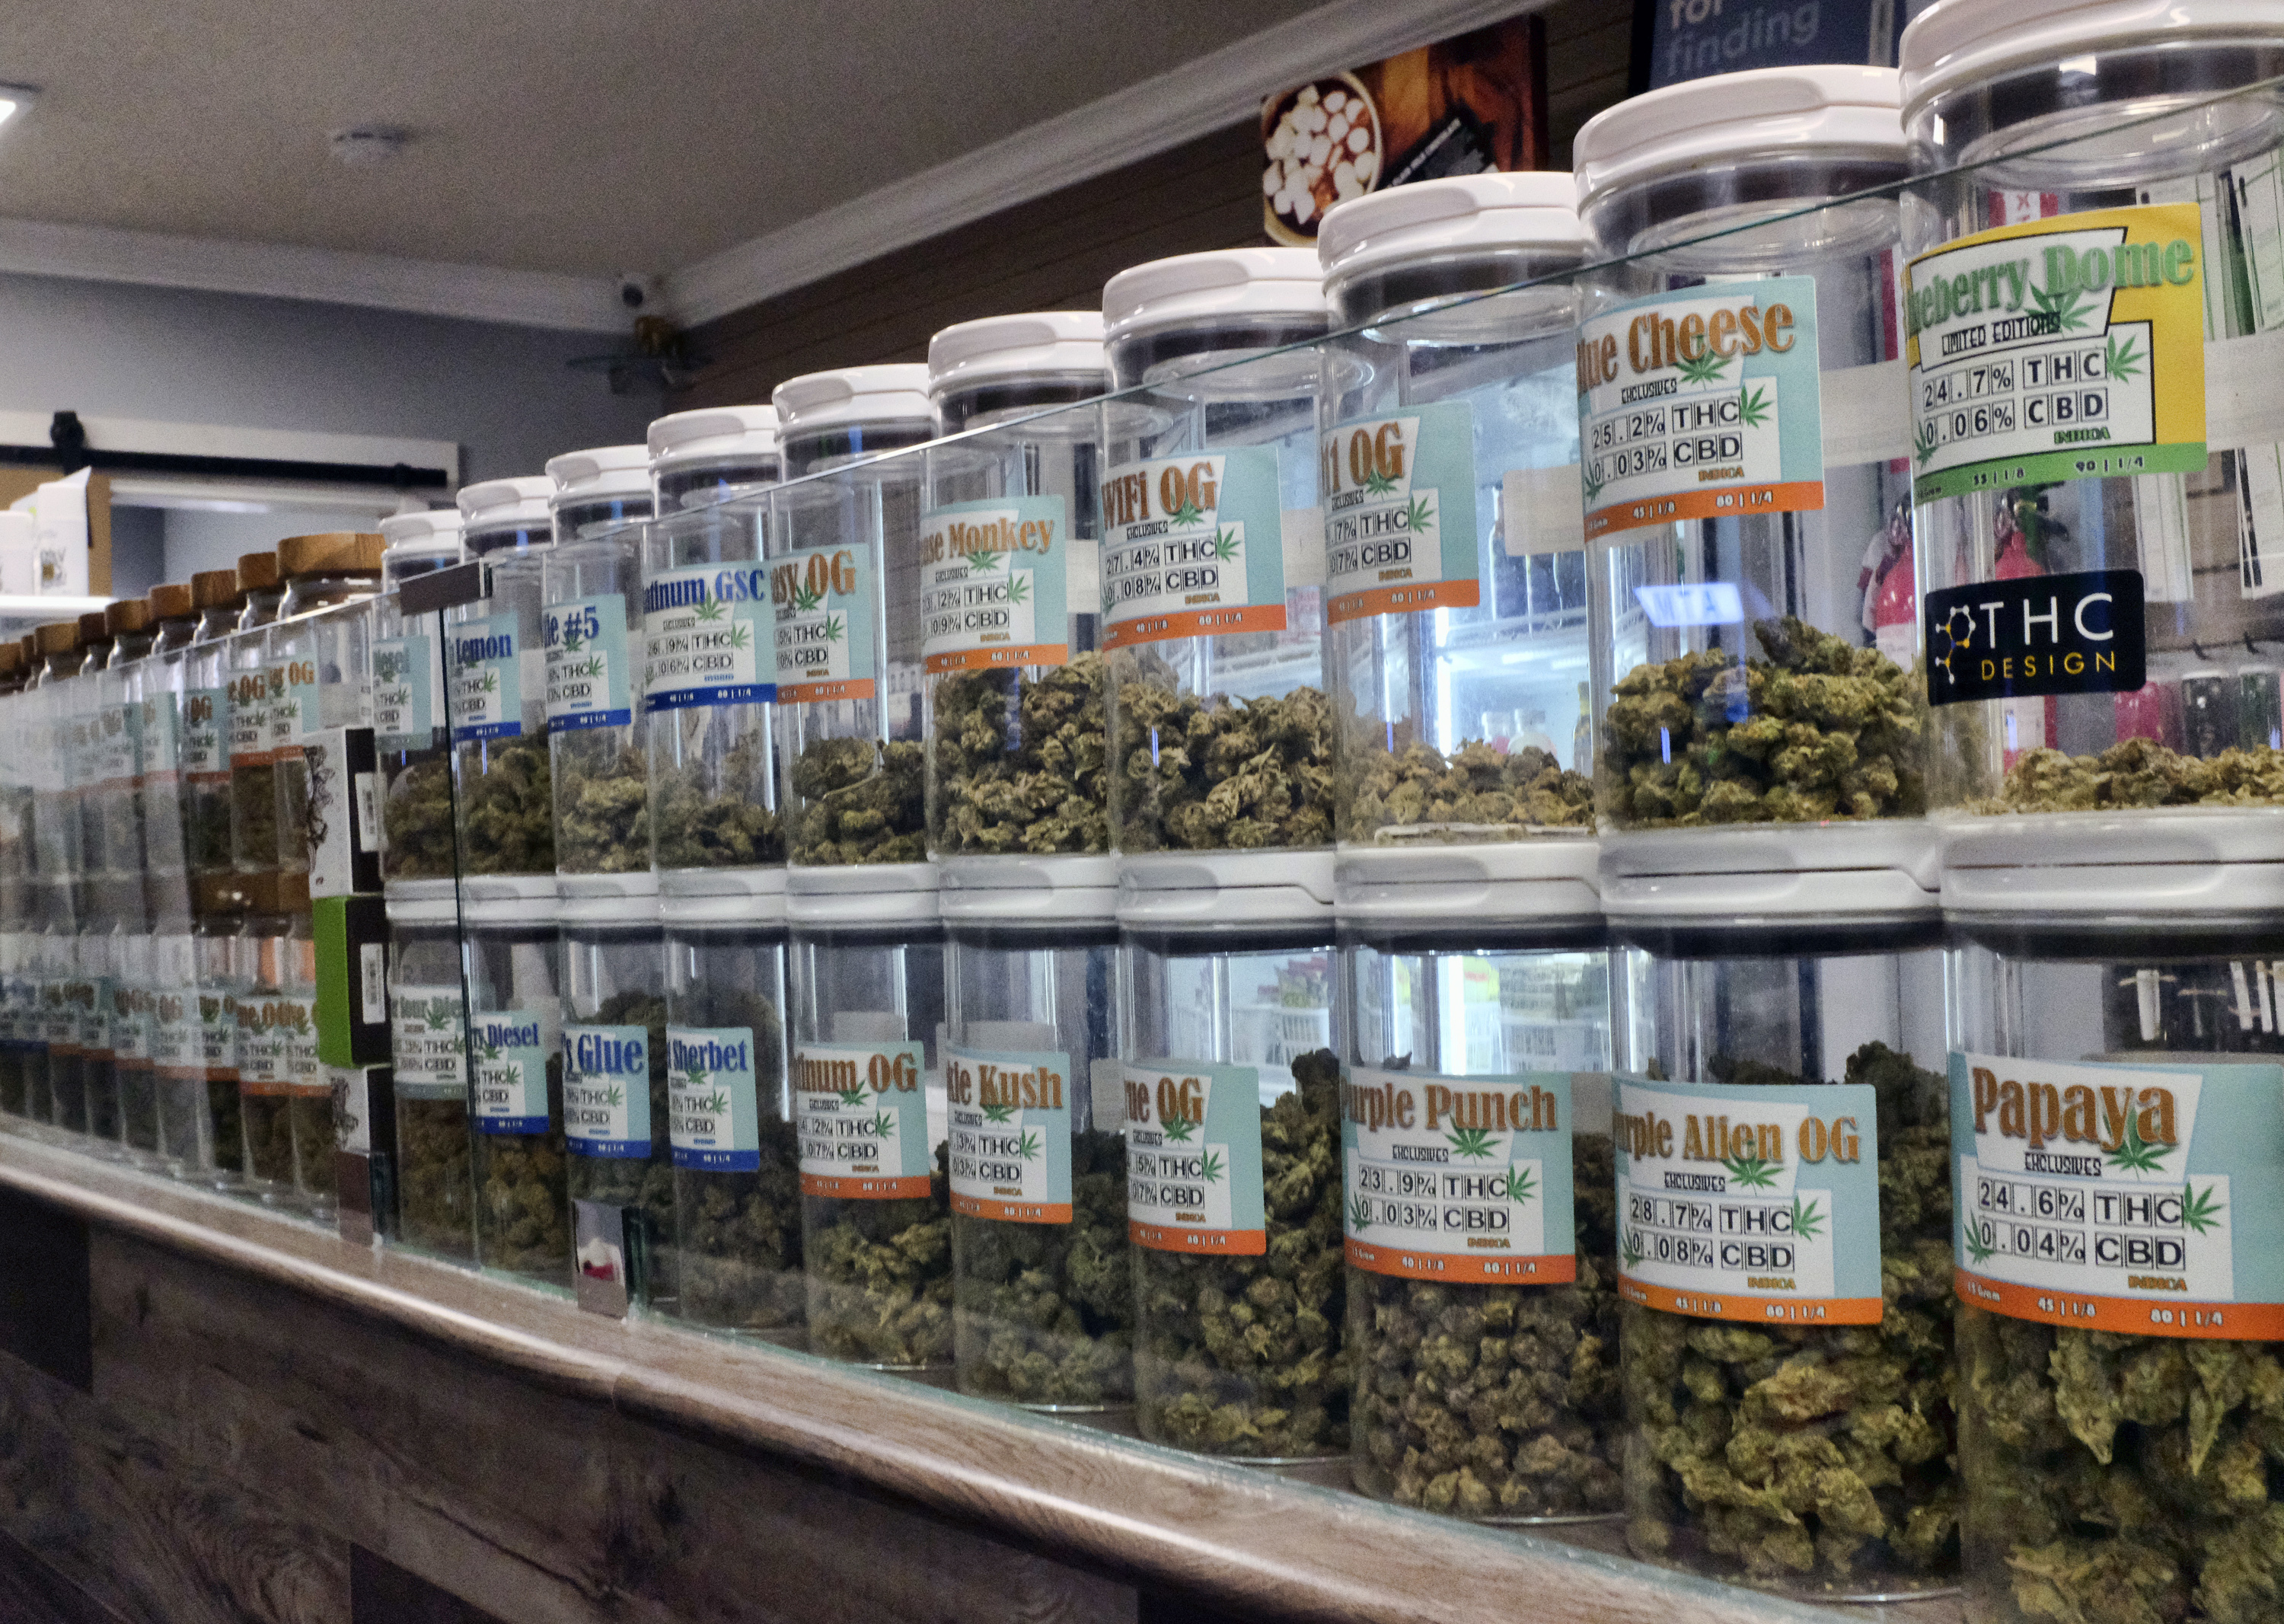 FILE - This Friday, Nov. 3, 2017 photo shows jars of medical marijuana on display on the counter of Western Caregivers Medical marijuana dispensary in Los Angeles. There will be no legal pot party in Los Angeles on Jan. 1. California kicks off recreational sales on New Year's Day, becoming the largest state in the nation with legal cannabis for adults. But Los Angeles officials announced Friday, Dec. 22, 2017, that dispensaries in the city won't be part of the celebration. The city won't begin accepting applications to sell legal recreational pot until Jan. 3, 2018, and it could take weeks before those businesses are properly licensed with the city and state. (AP Photo/Richard Vogel, File)